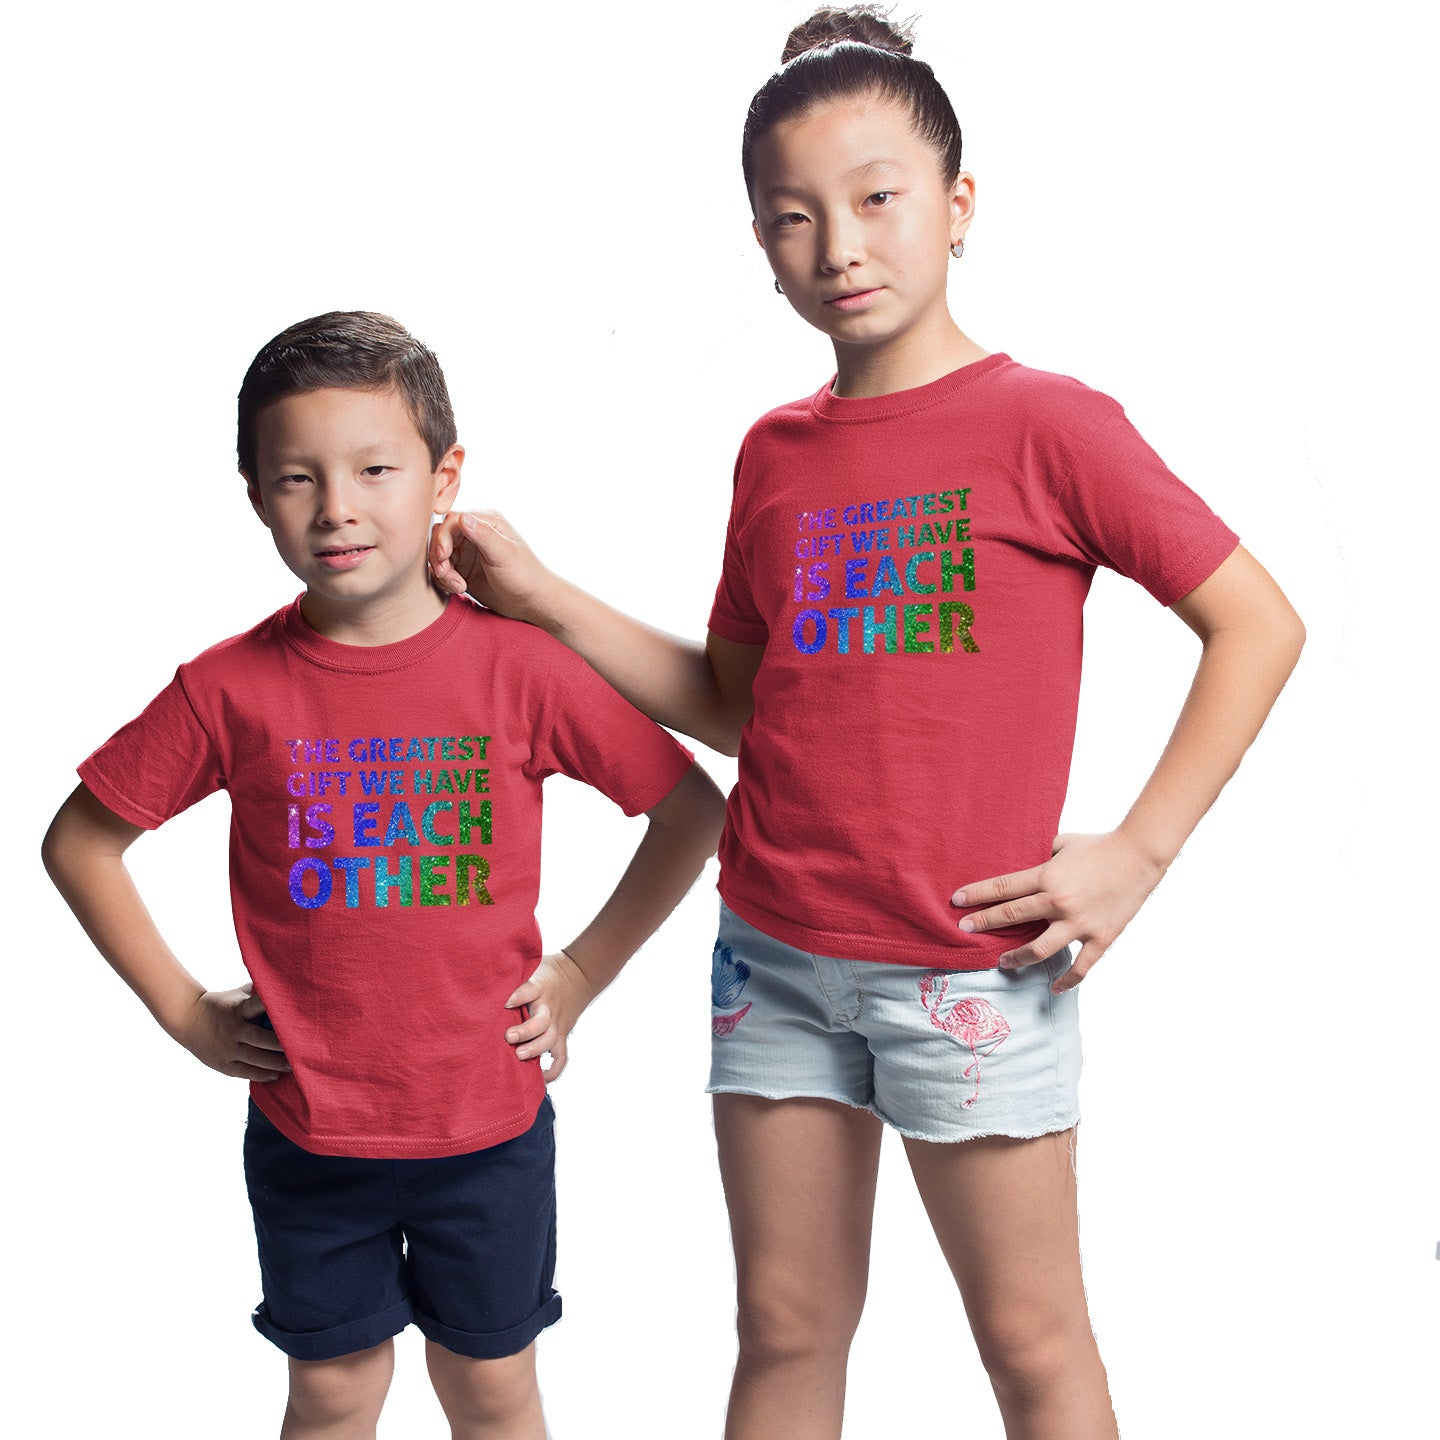 Sprinklecart Matching The Greatest Gift We Have is Each Other Printed Sibling T Shirts(Red)